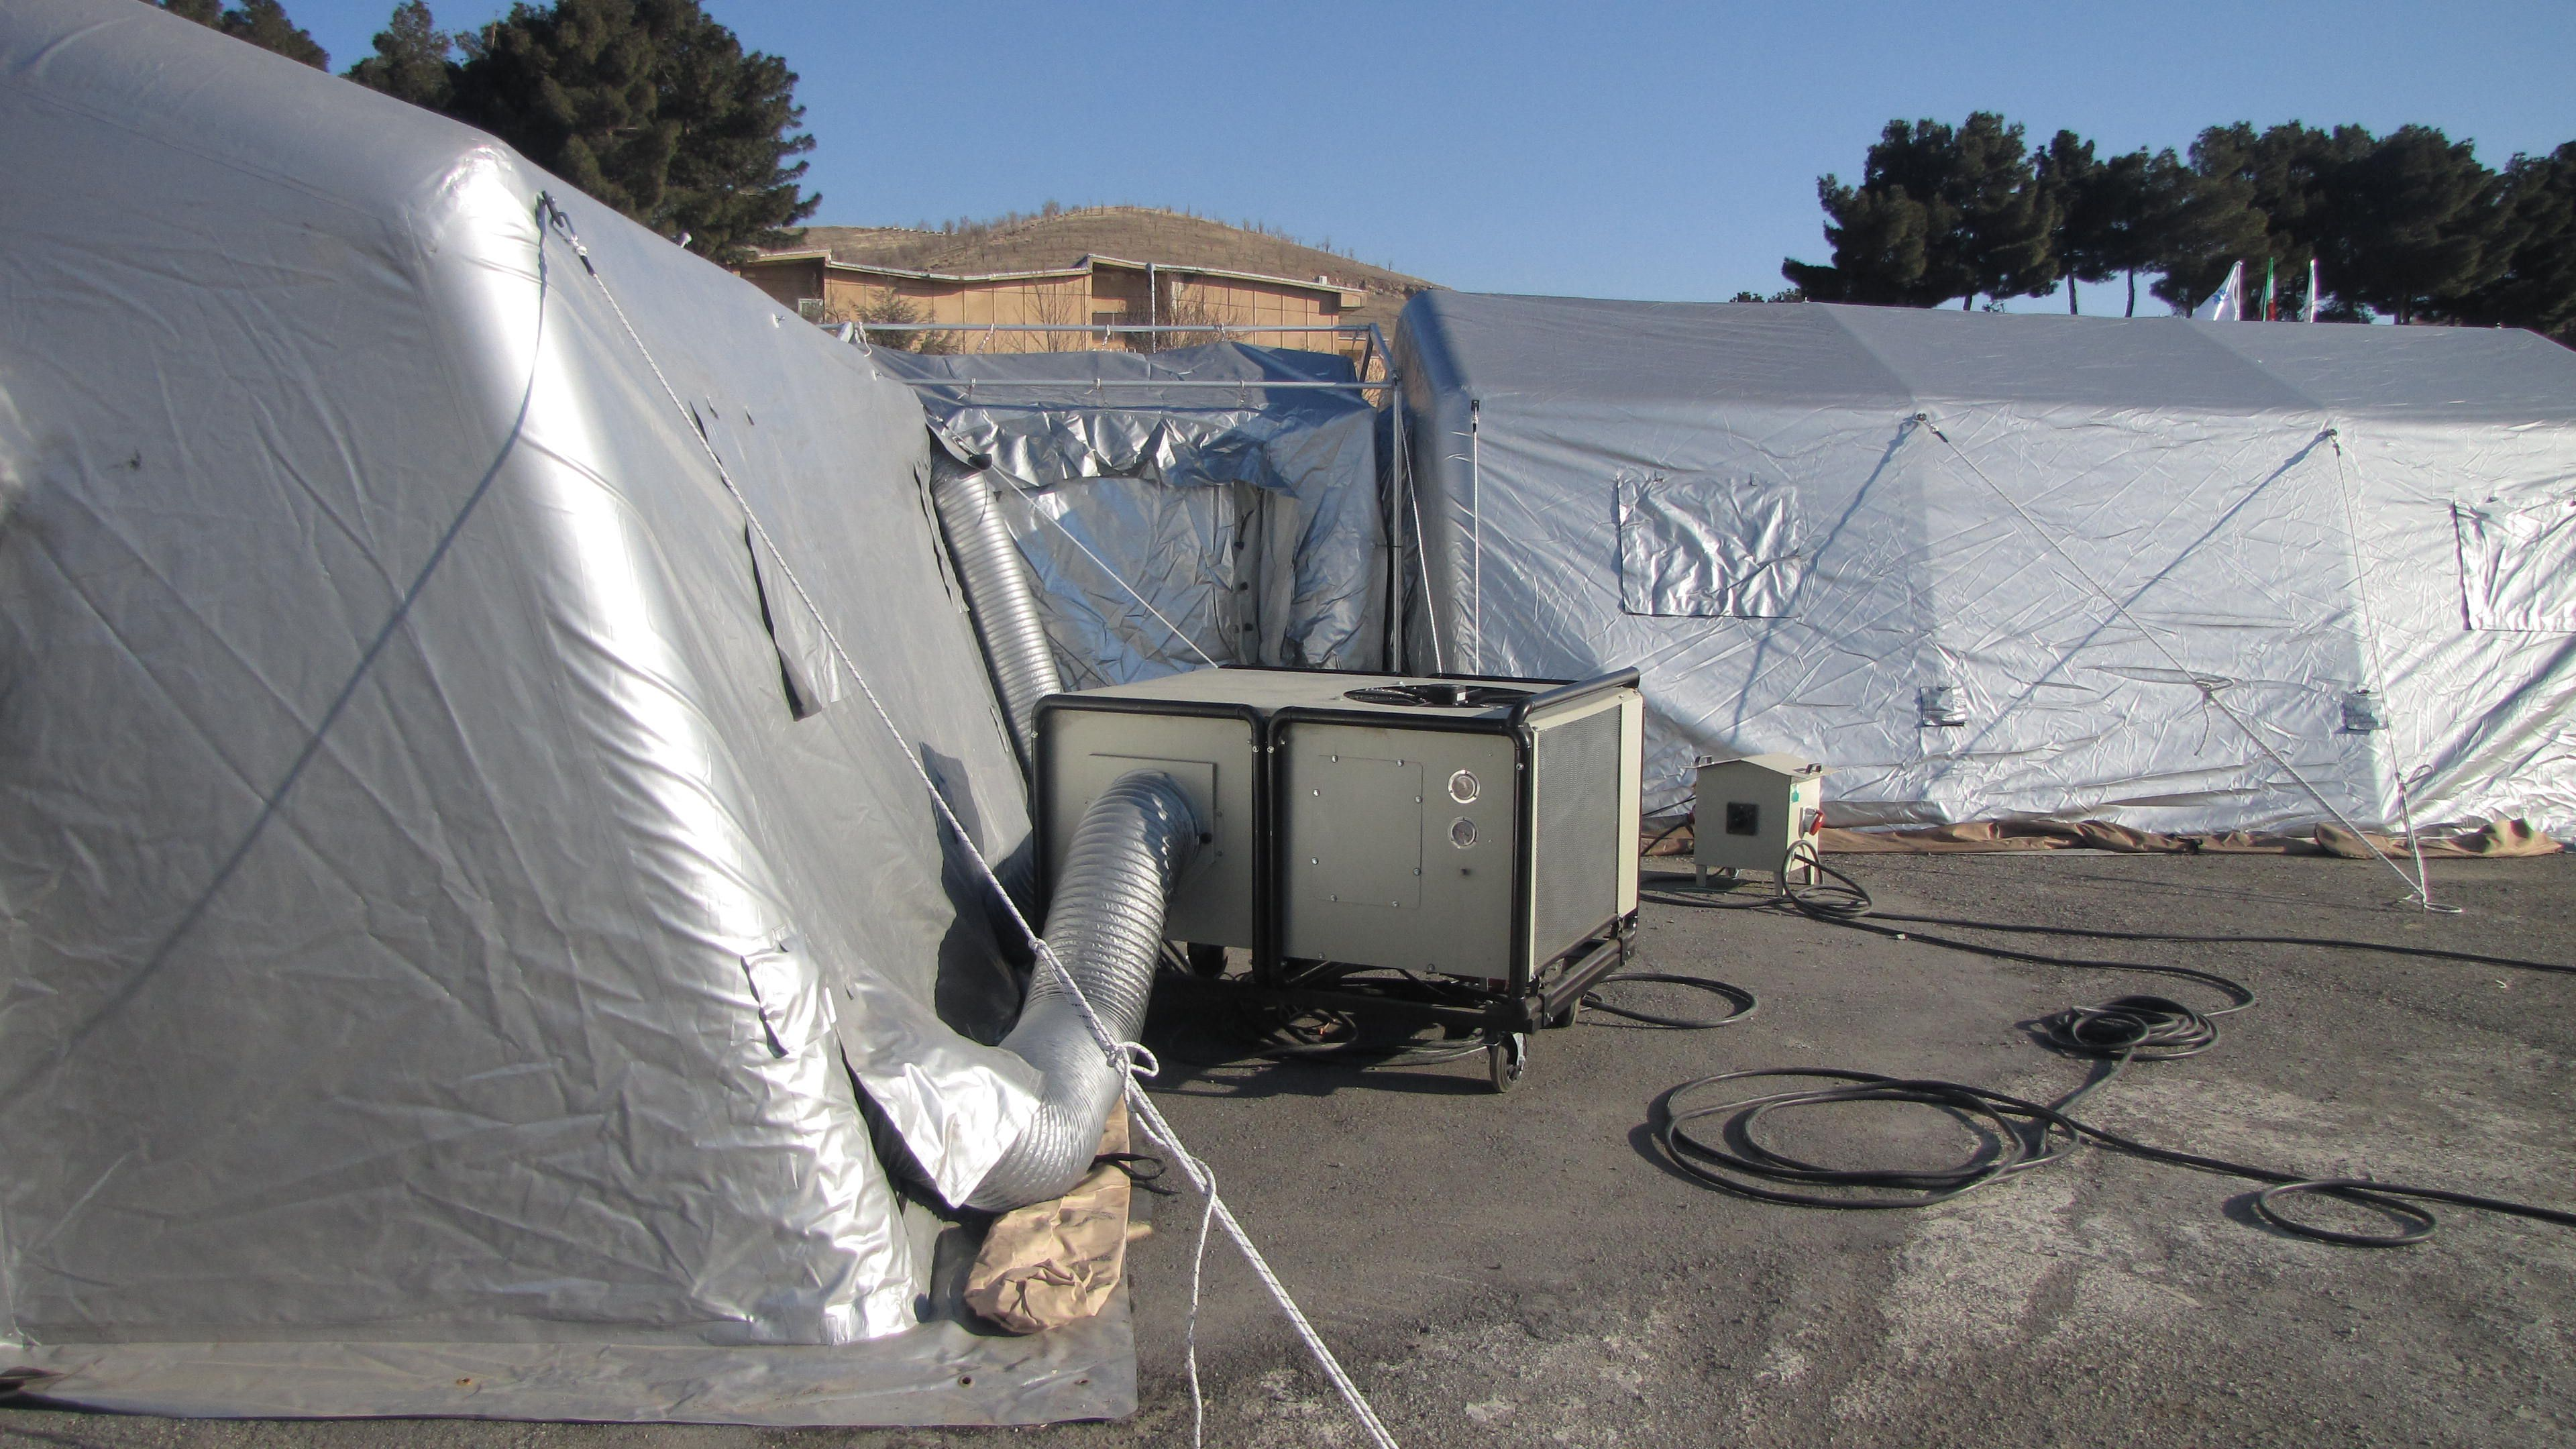 military air conditioner & Military air conditioning system and tent air conditioner